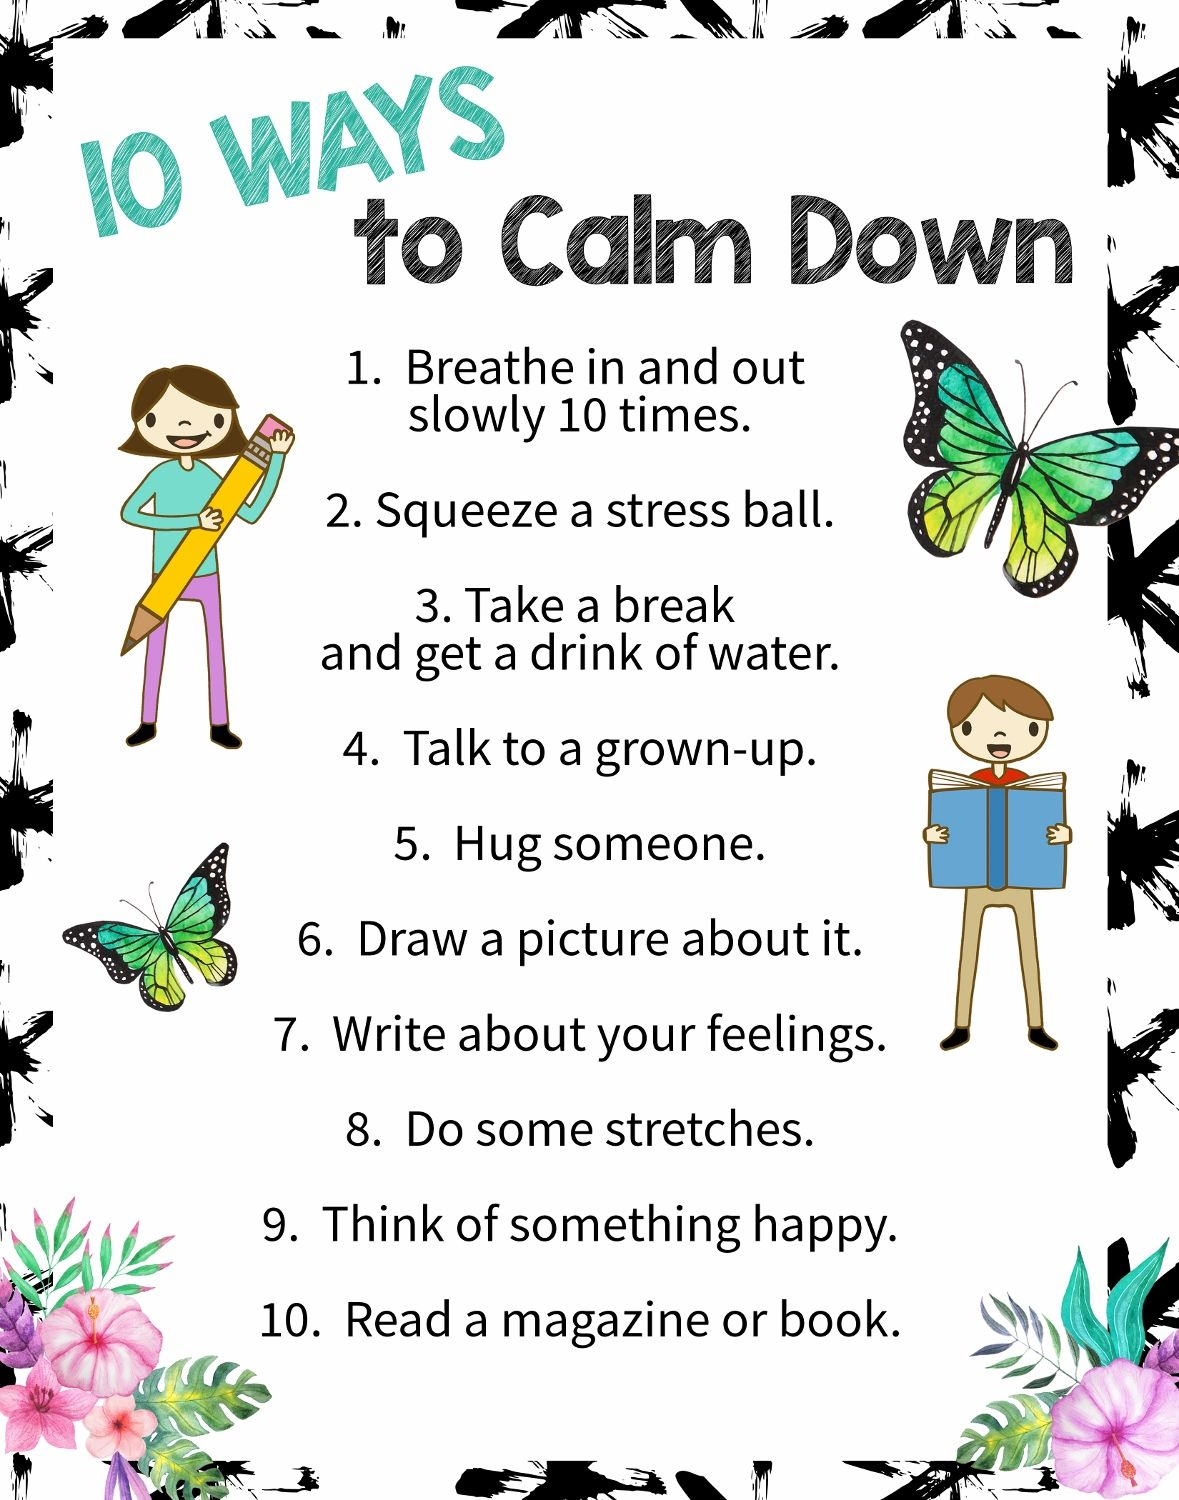 10 Ways To Calm Down A Free Printable Poster Art Is Basic An Elementary Art Blog Mindfulness For Kids School Psychology Coping Skills